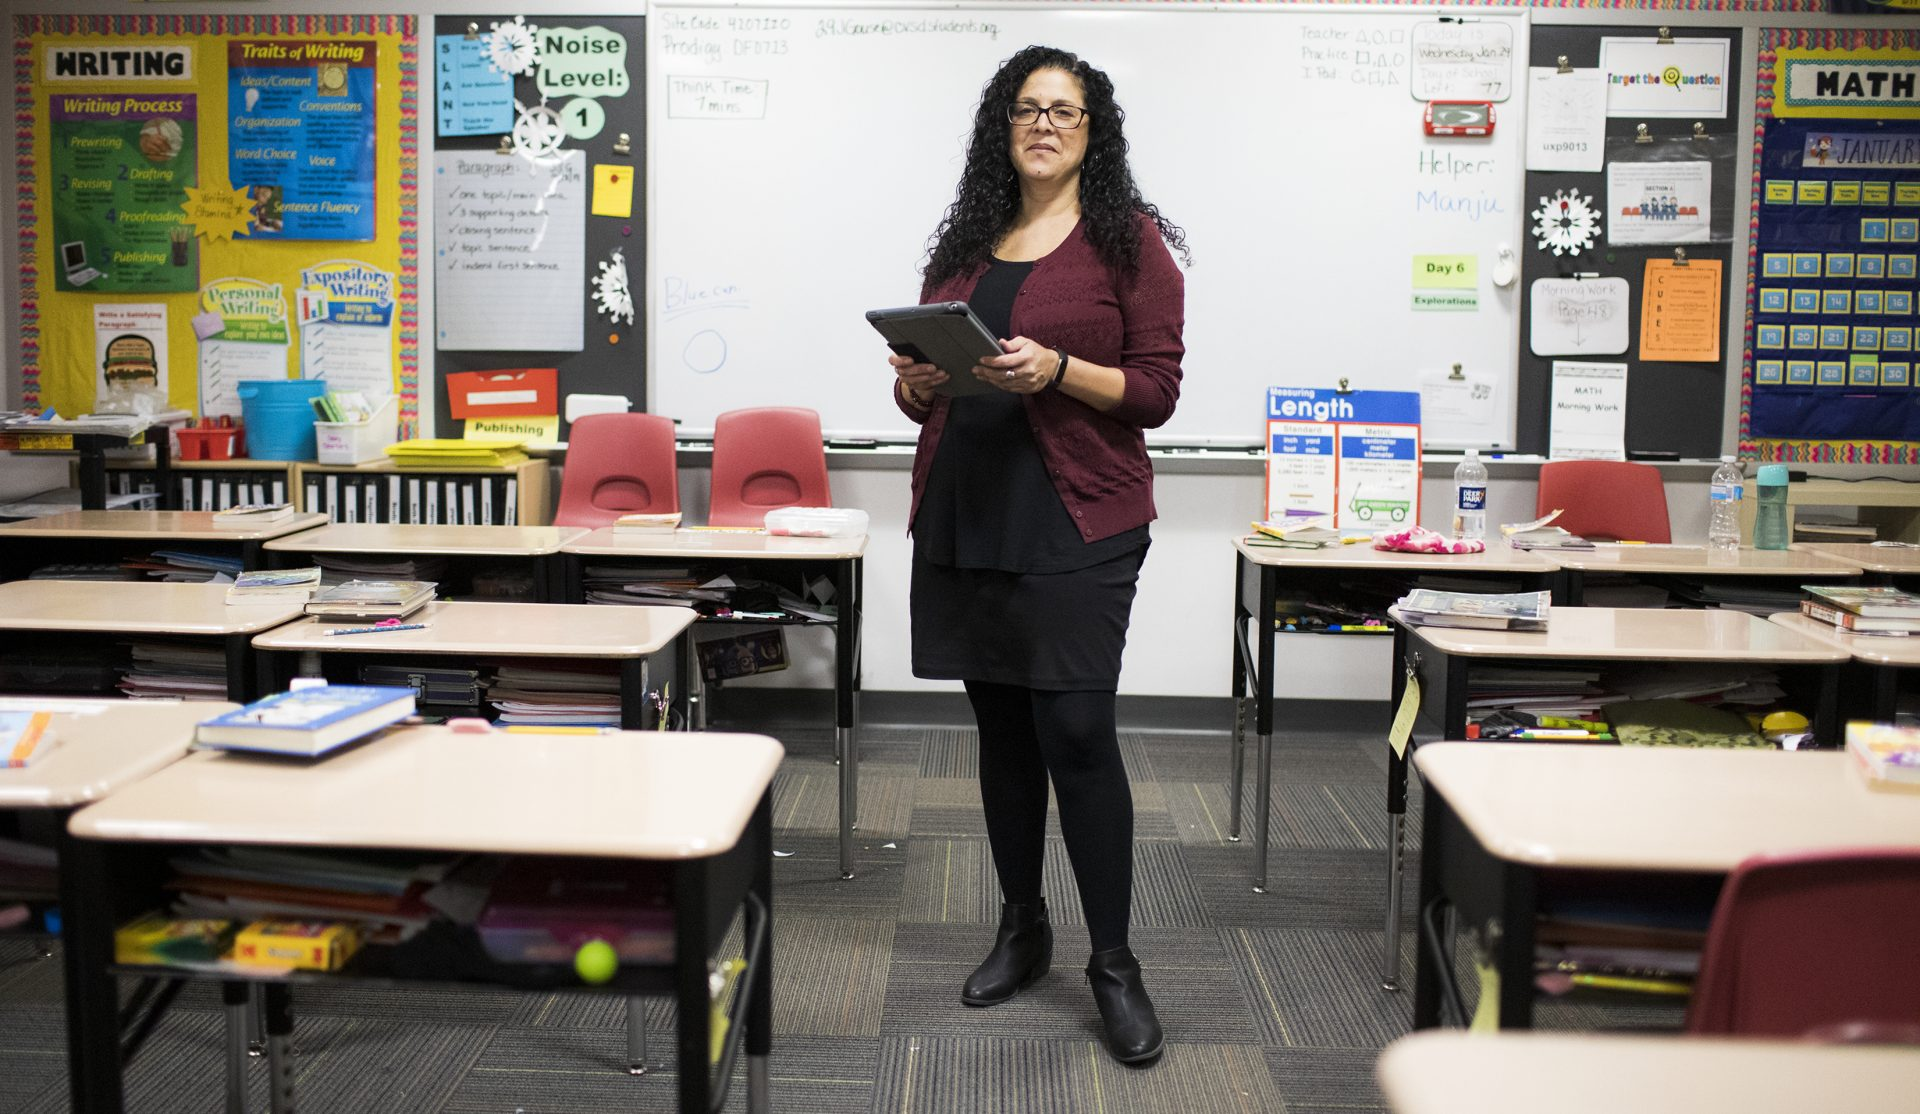 Jill Gouse is in her ninth year of teacher at Silver Spring Elementary School in the Cumberland Valley SchoolDistrict. She is one of only a few teachers of color. Jan. 28, 2020.